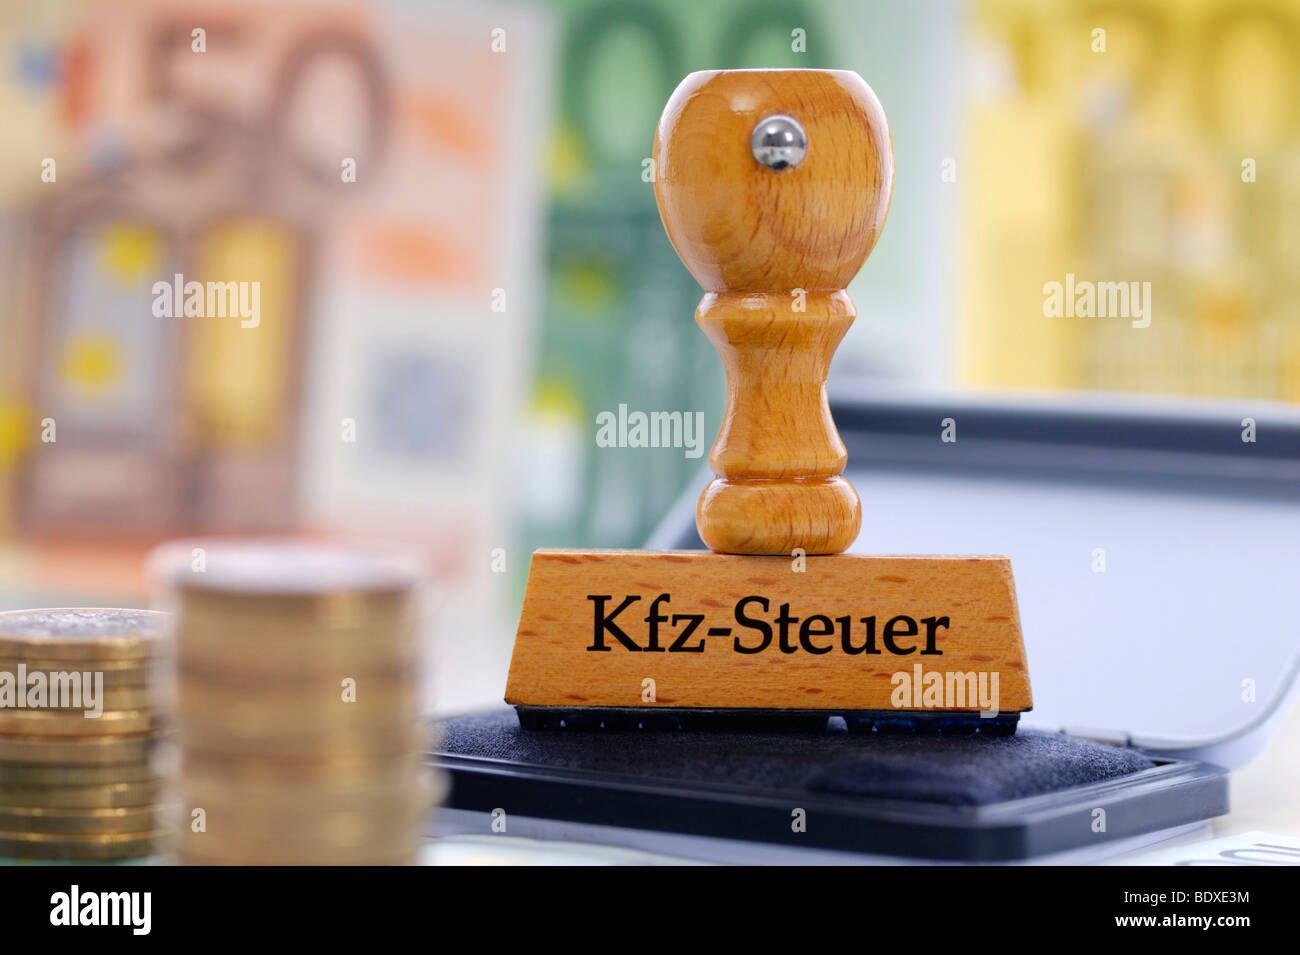 Stamp labelled 'Kfz-Steuer', German for 'car tax' - Stock Image